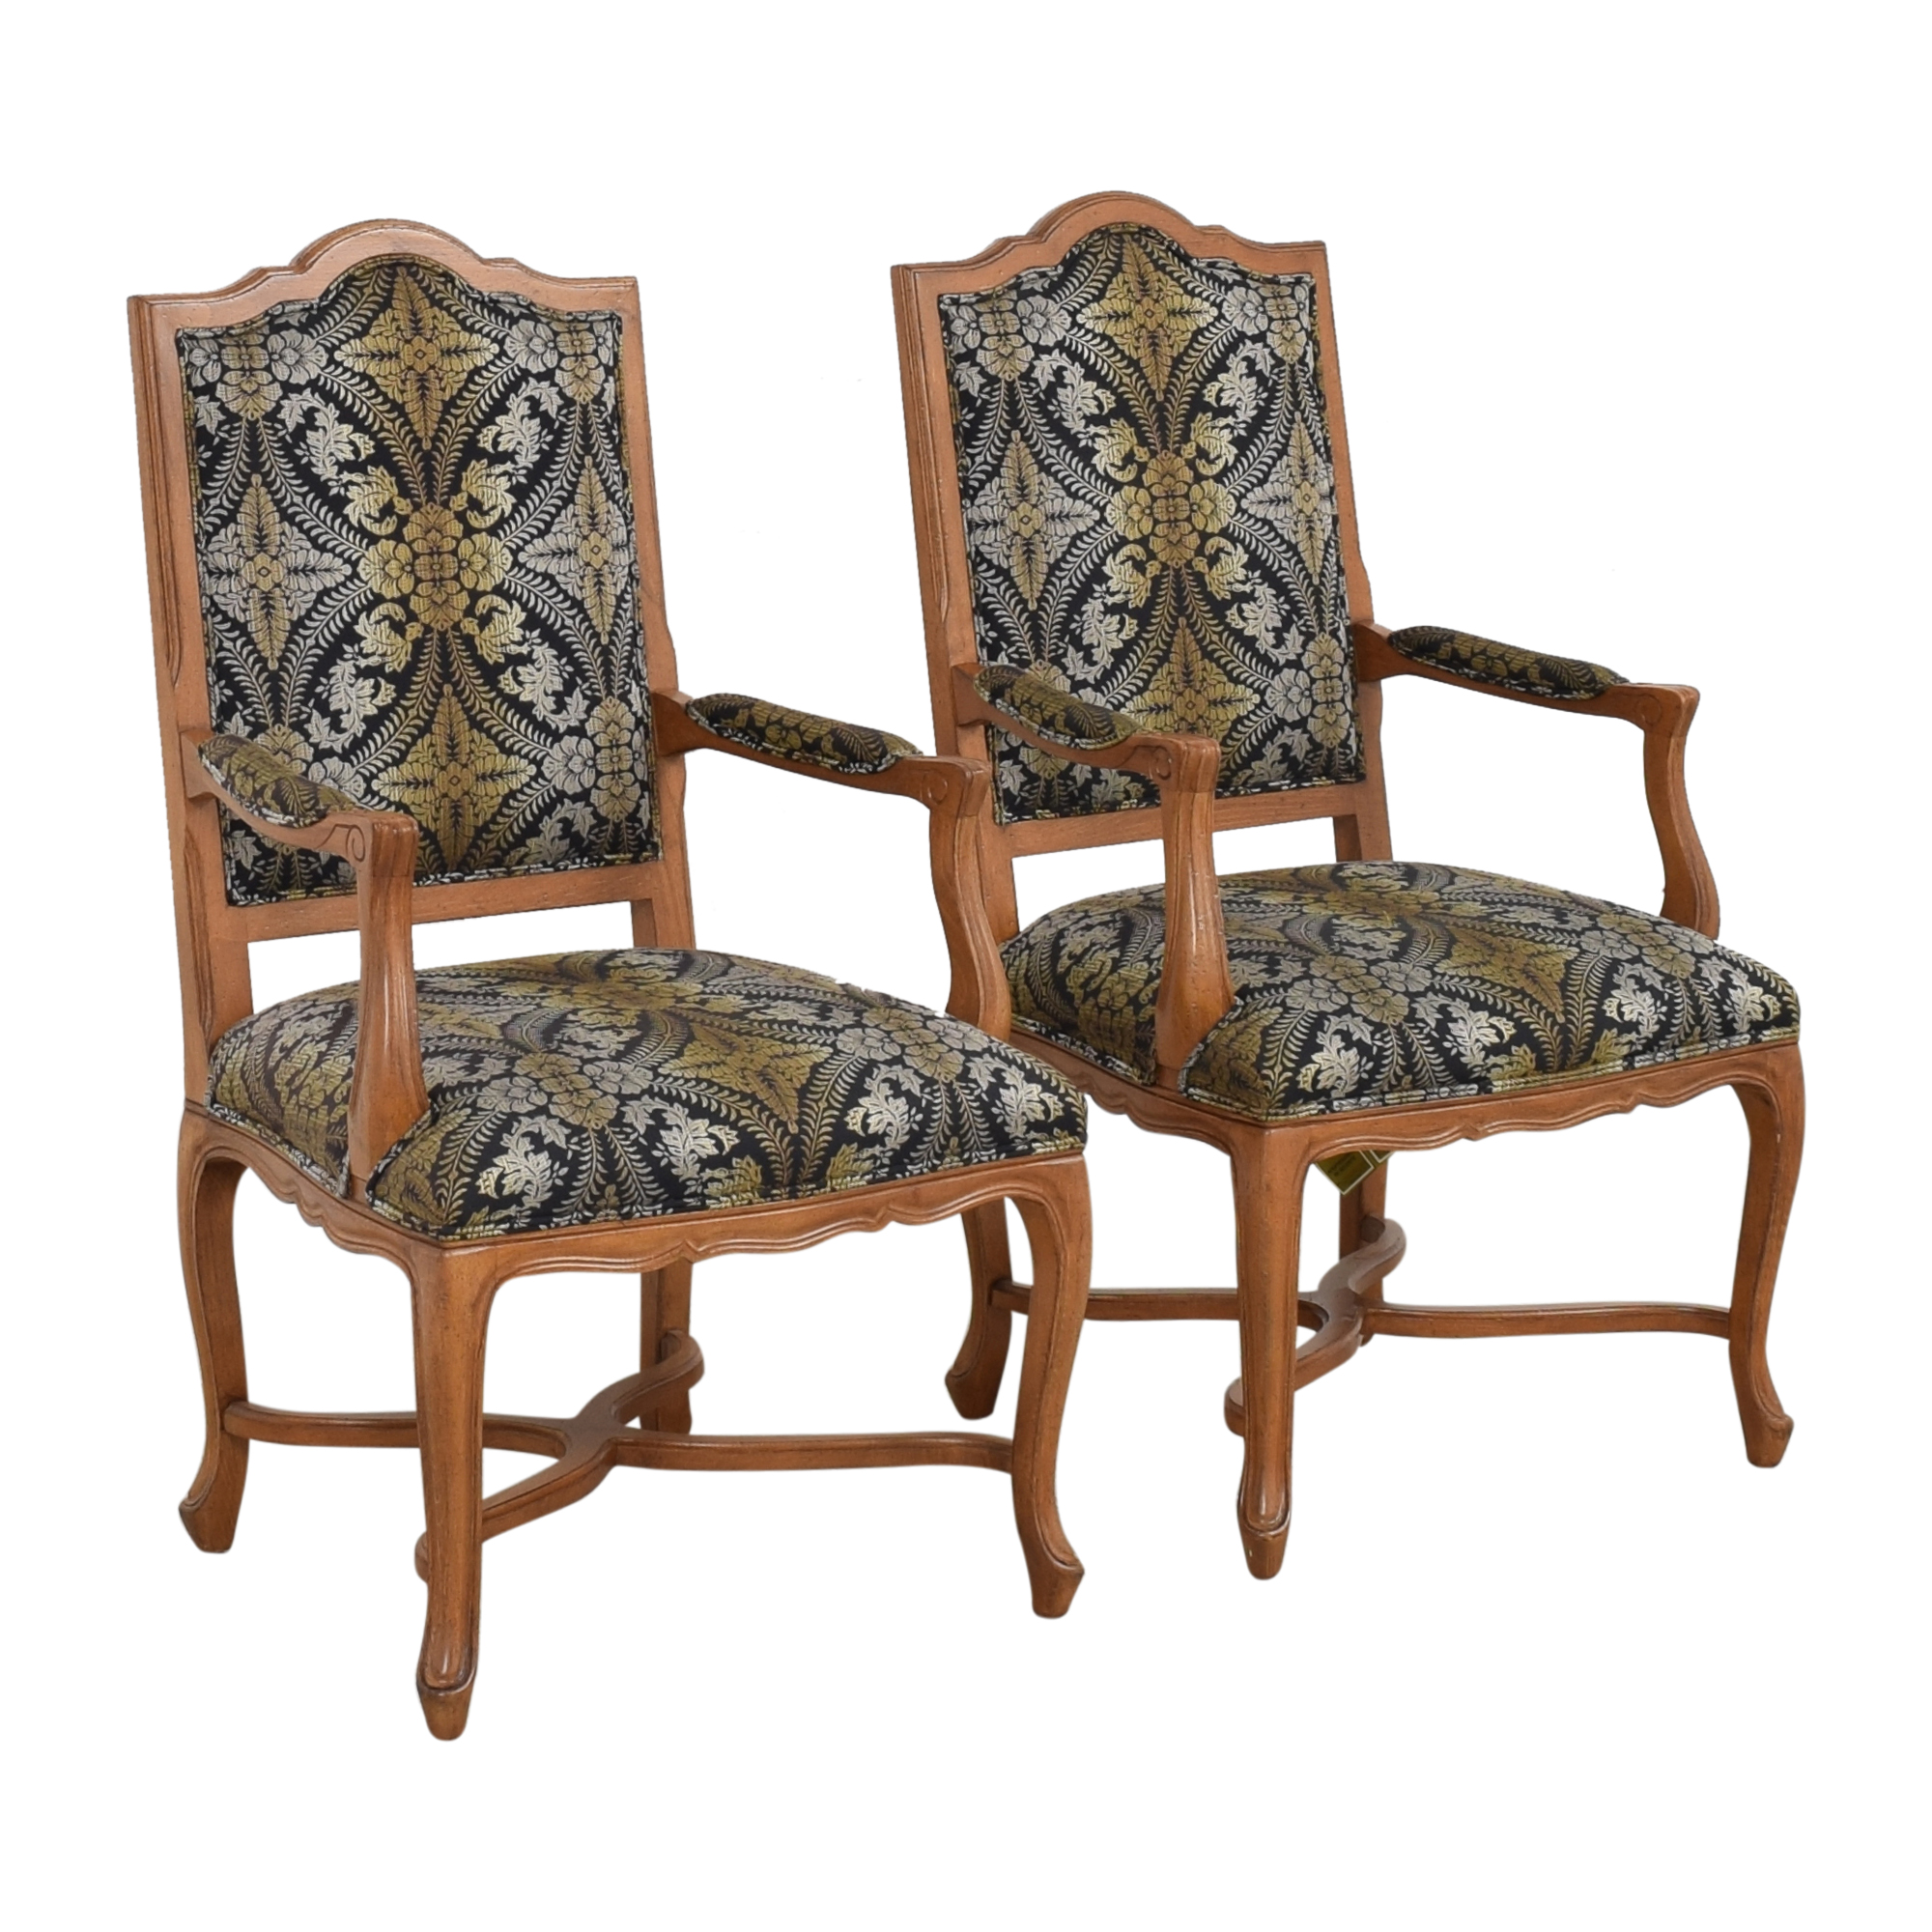 Ethan Allen Ethan Allen Dining Arm Chairs ma